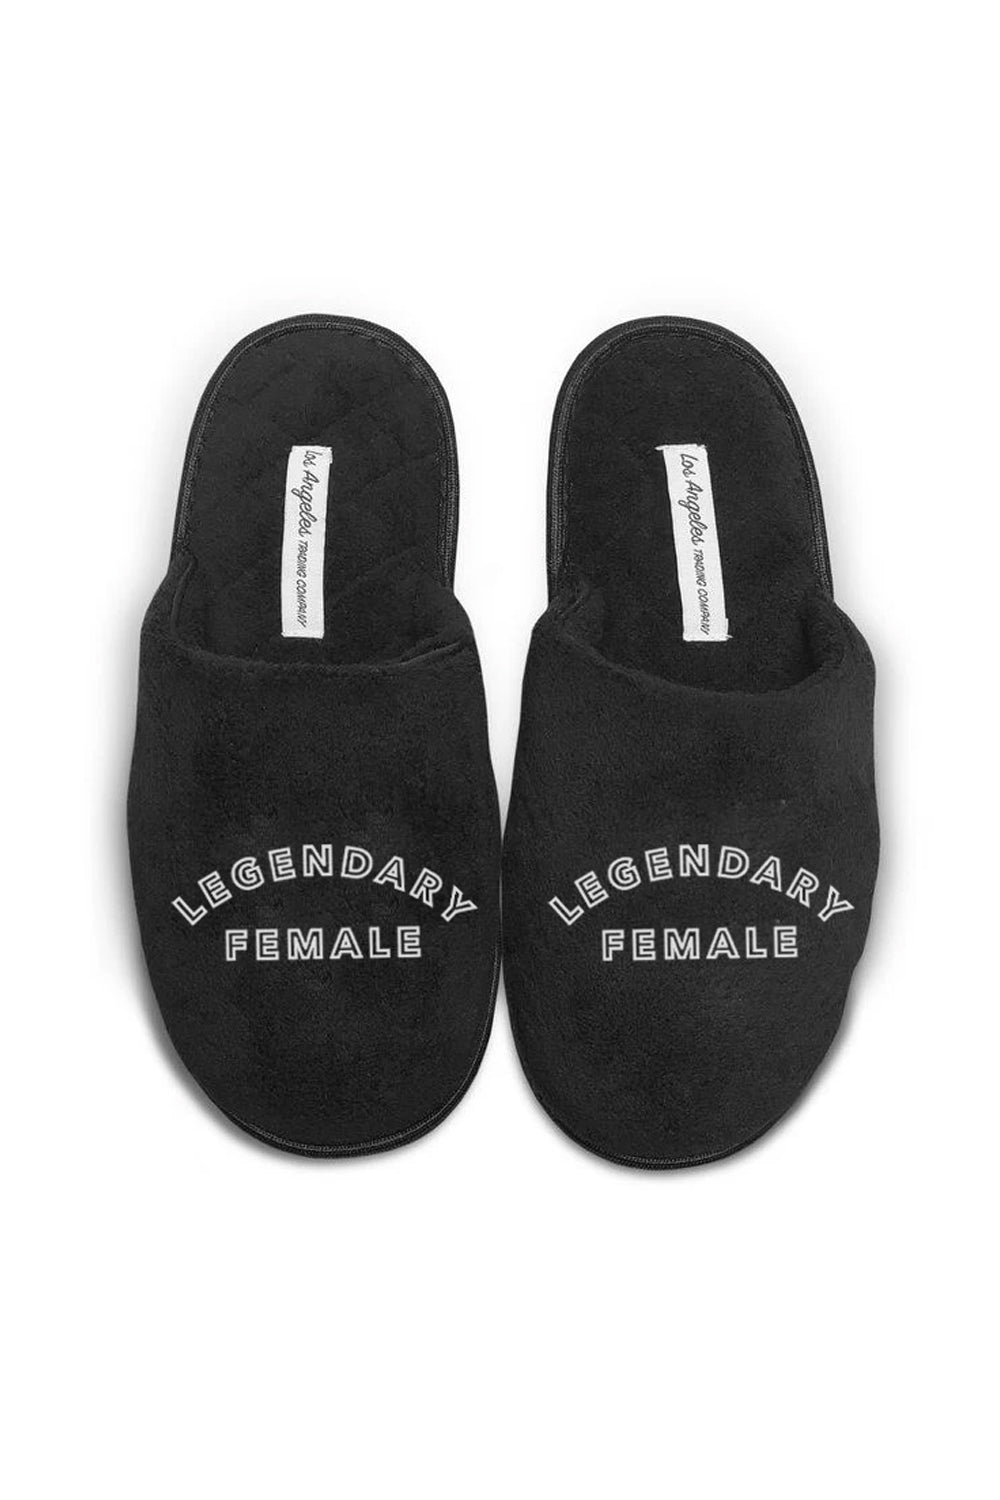 SLIPPERS - Legendary Female